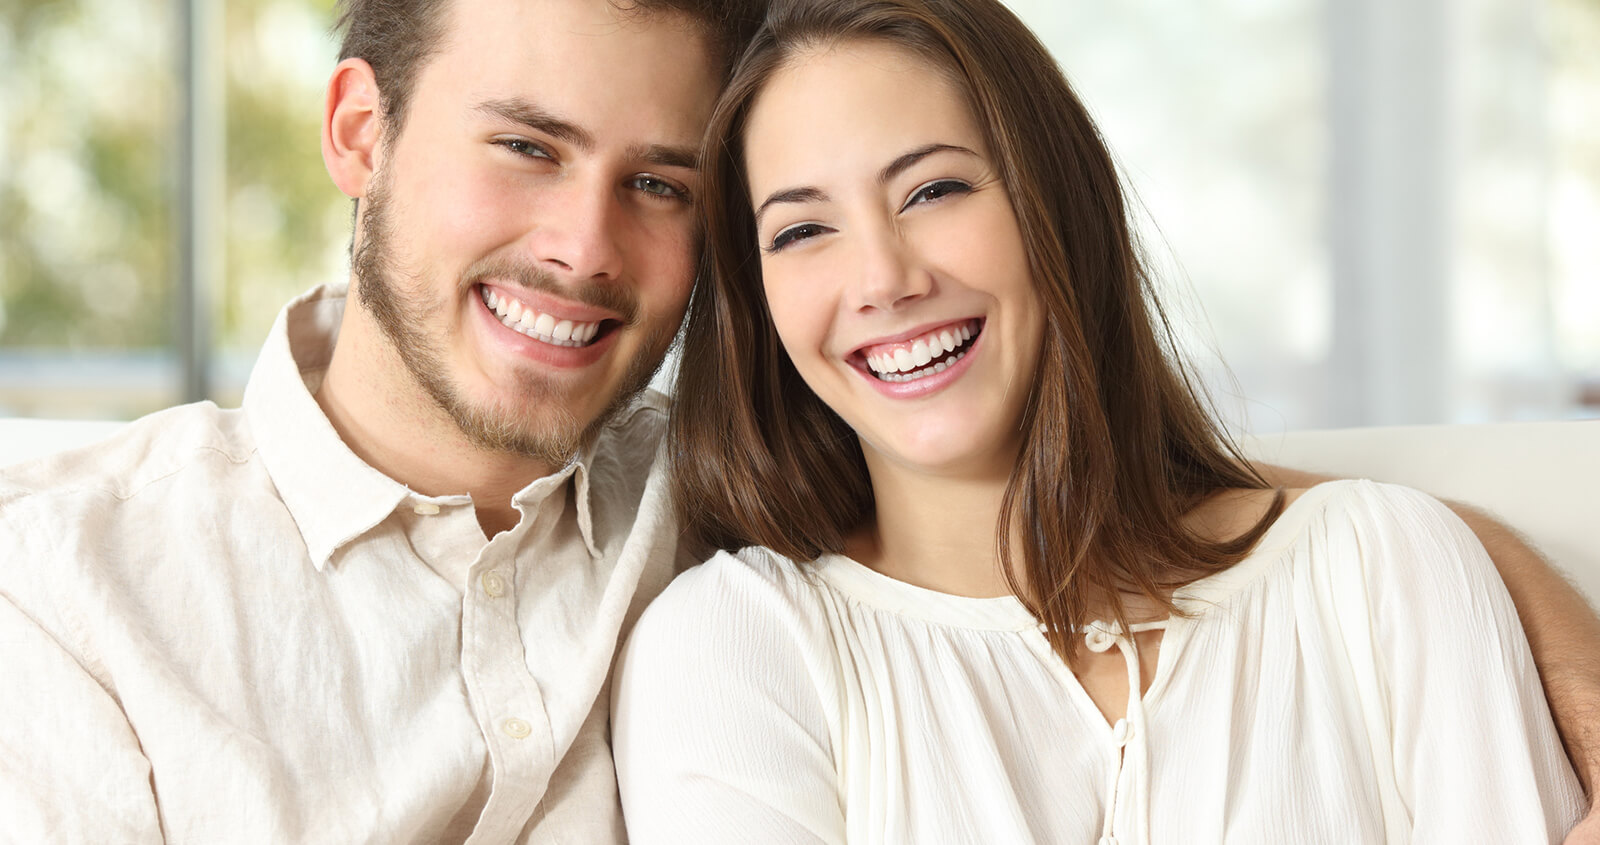 """Cosmetic Dental Services At """"Dentistry By Shane Nelson, DDS"""", Can Create Your Dream Smile"""